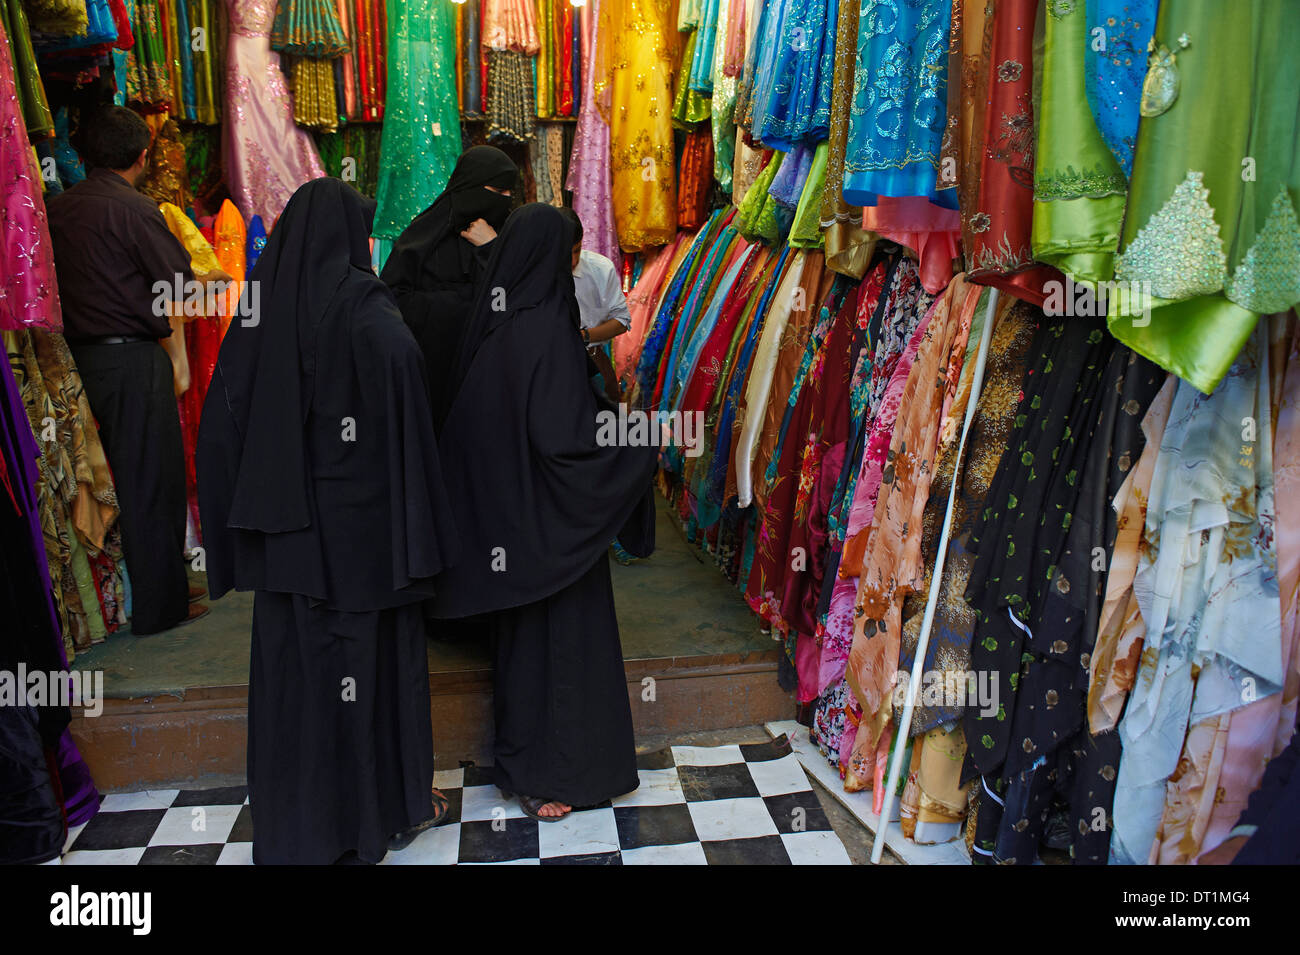 Souk in the Old Town, UNESCO World Heritage Site, Sanaa, Yemen, Middle East - Stock Image